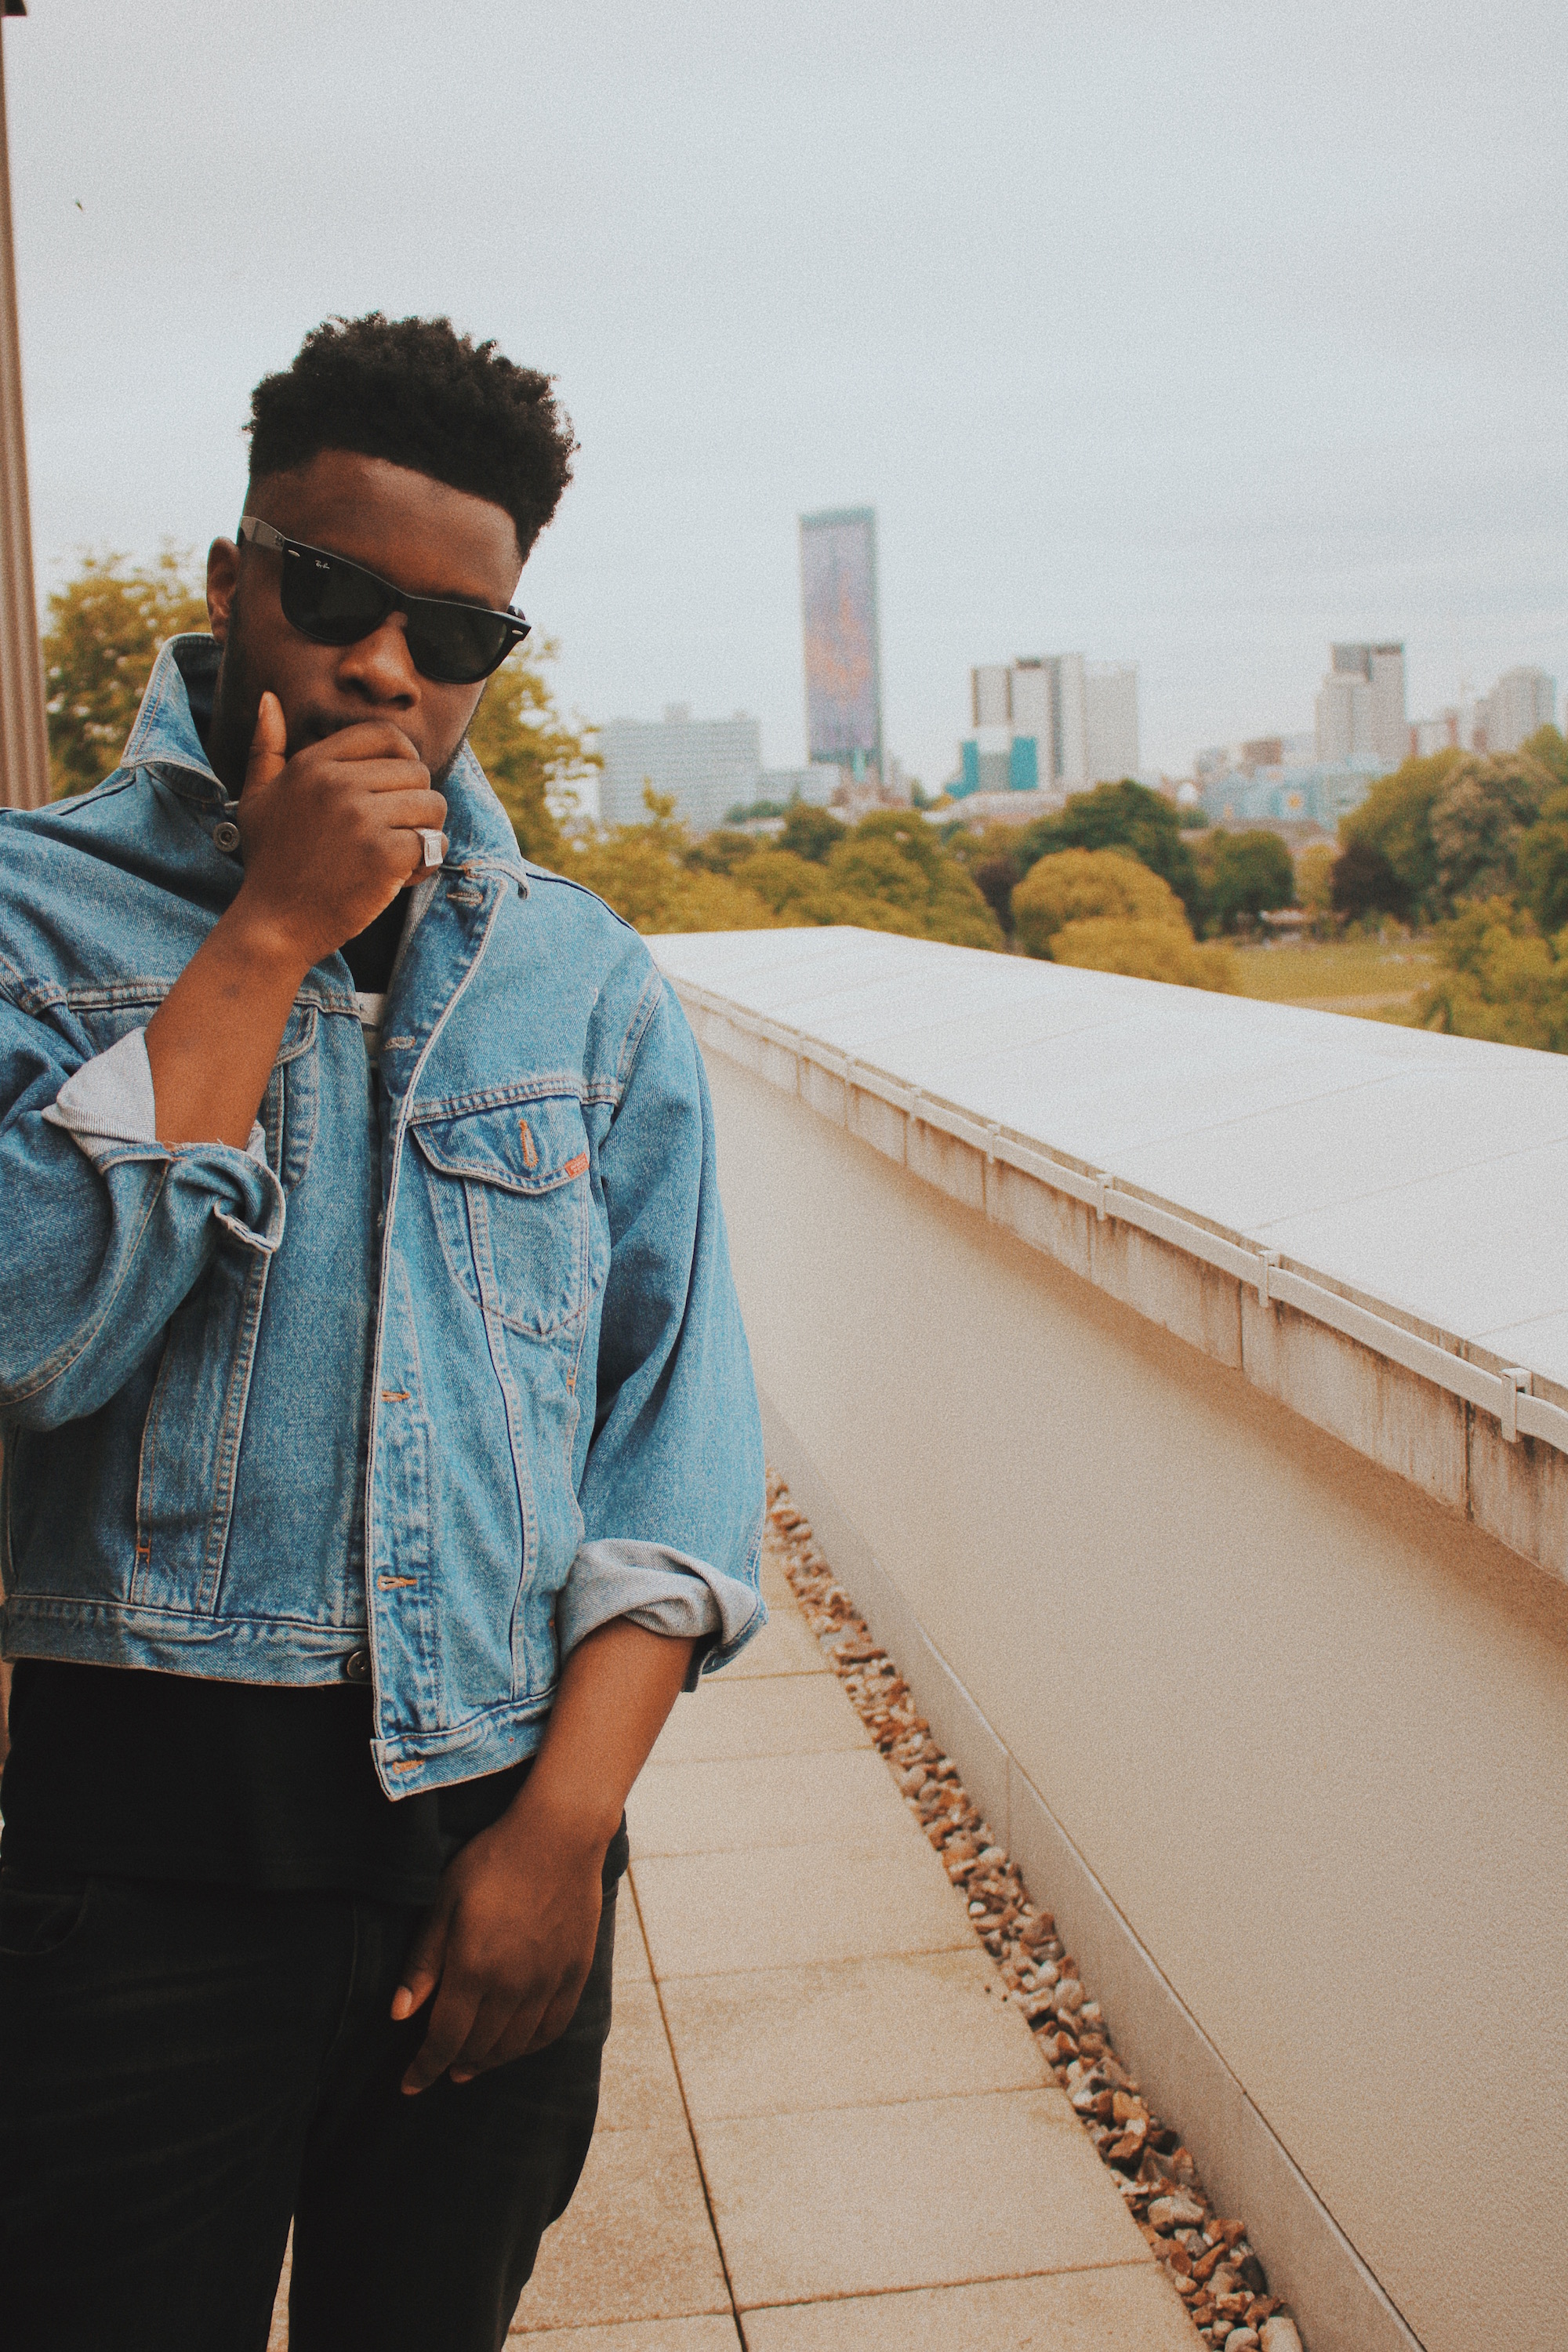 Preview: MALEEK BERRY